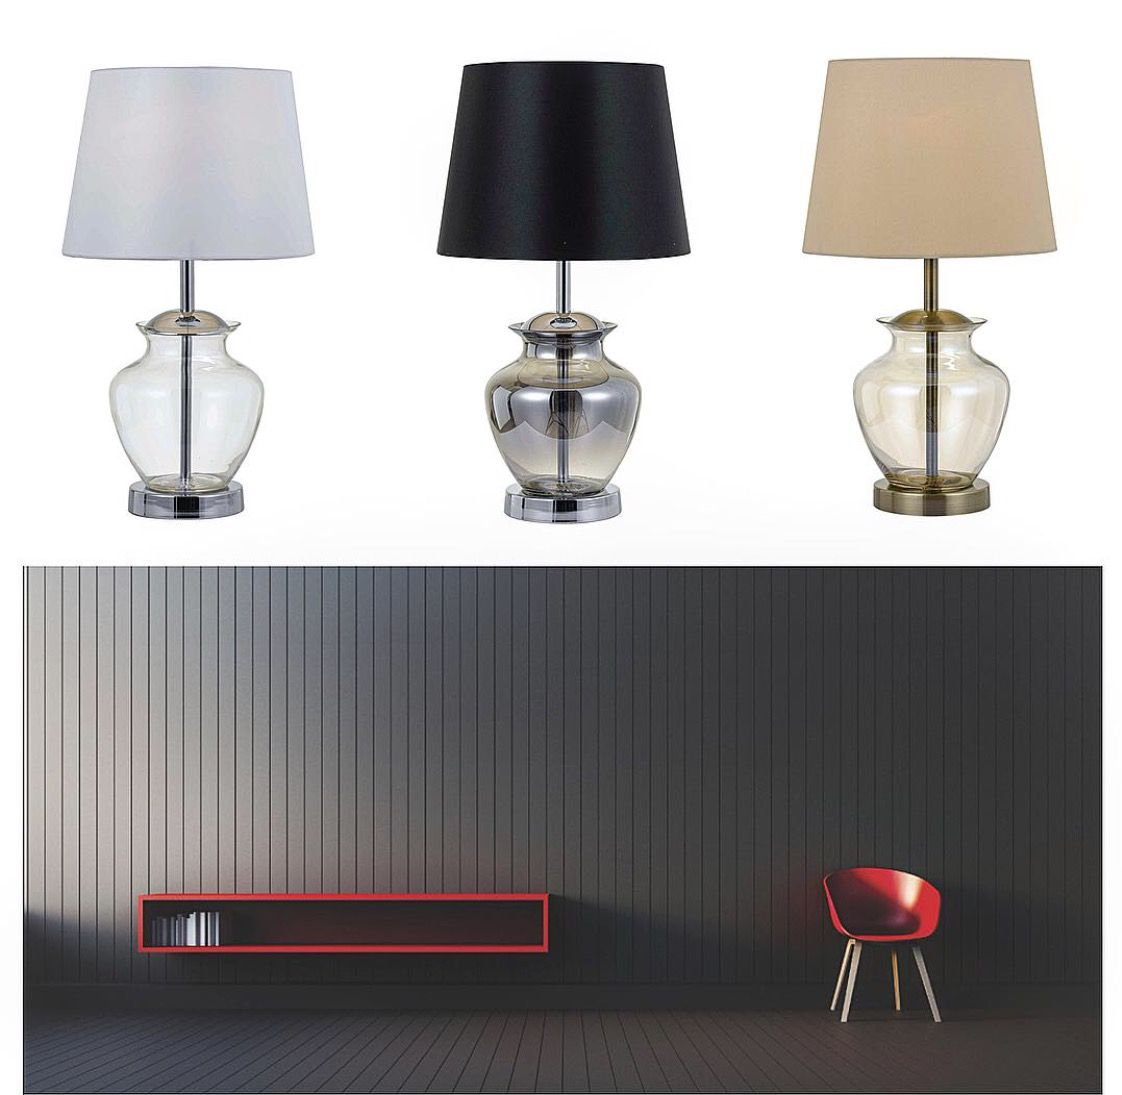 New Arrivals At Bitola Lighting The Elegant June Table Lamps Available In Three Diffe Color Combinations Www Bitolalighting Au